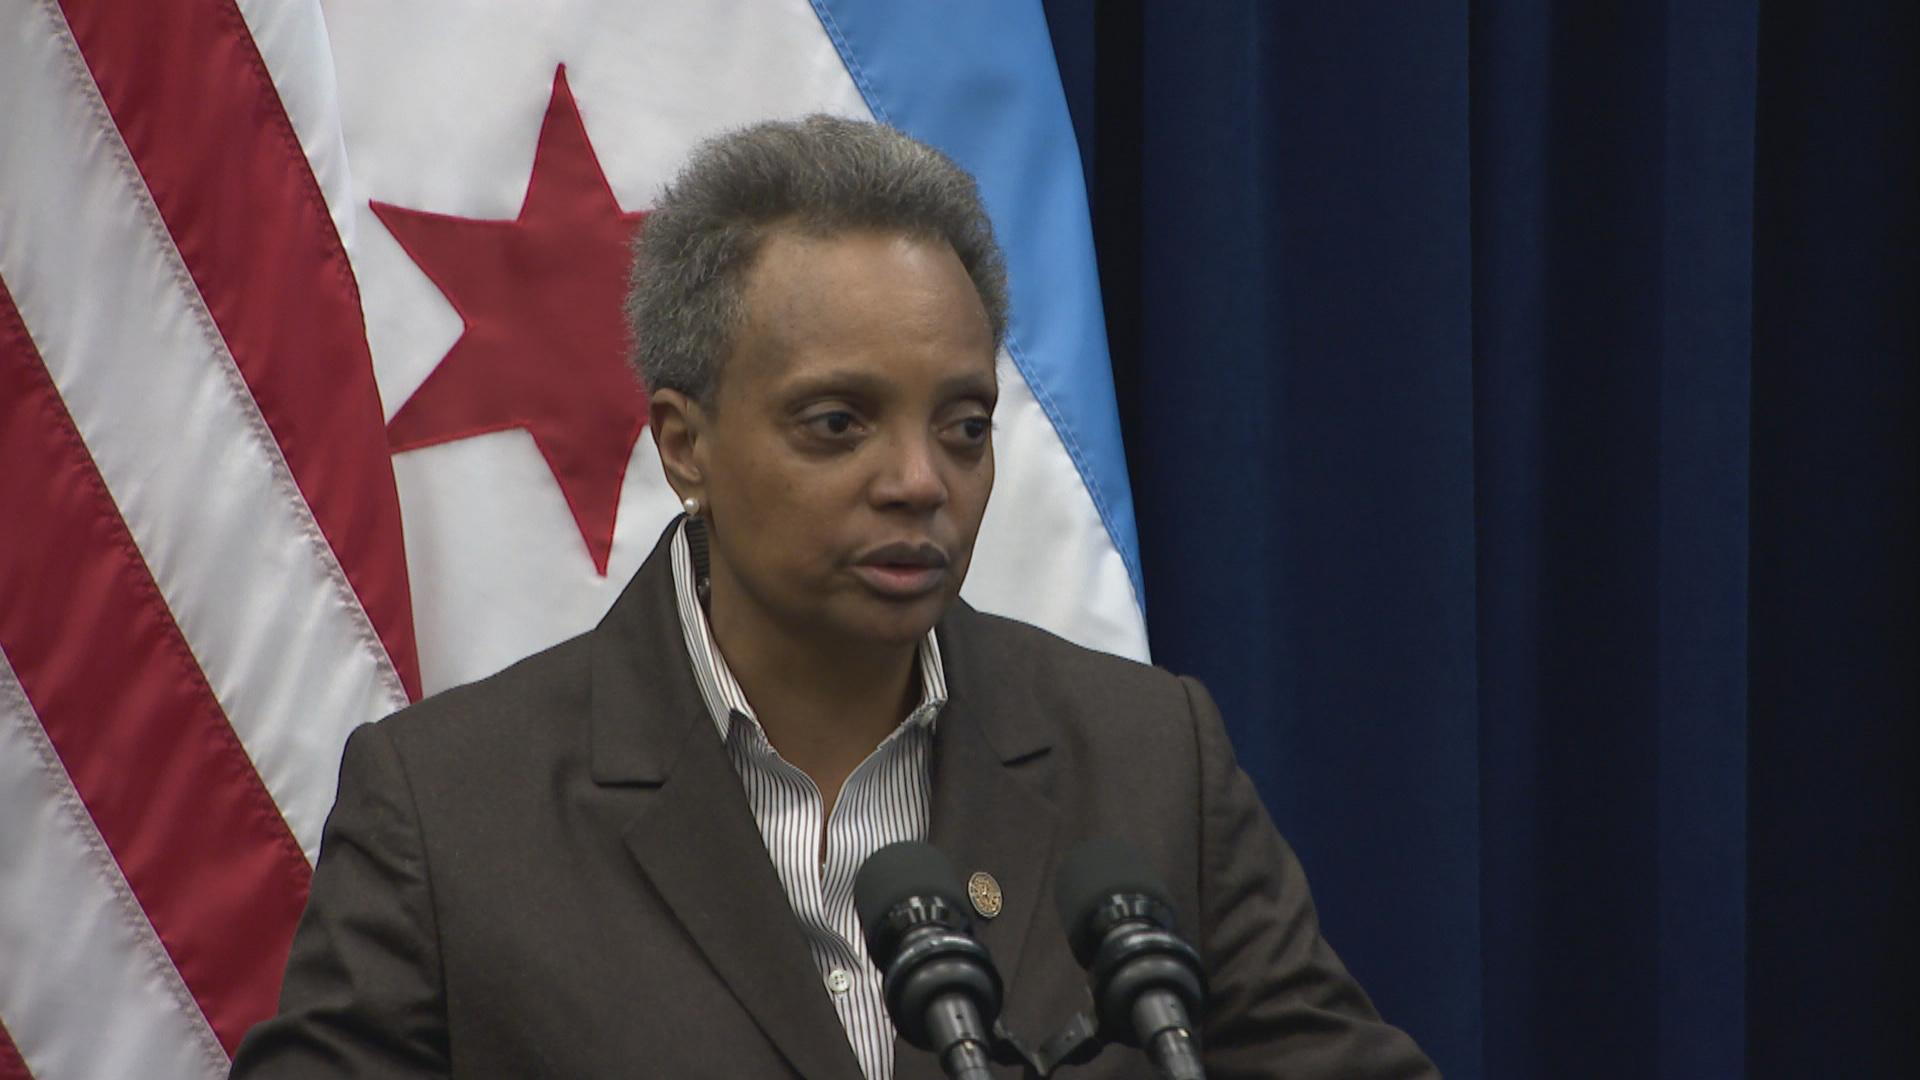 Mayor Lori Lightfoot speaks to the media following a chaotic City Council meeting on Wednesday, Dec. 18, 2019. (WTTW News)